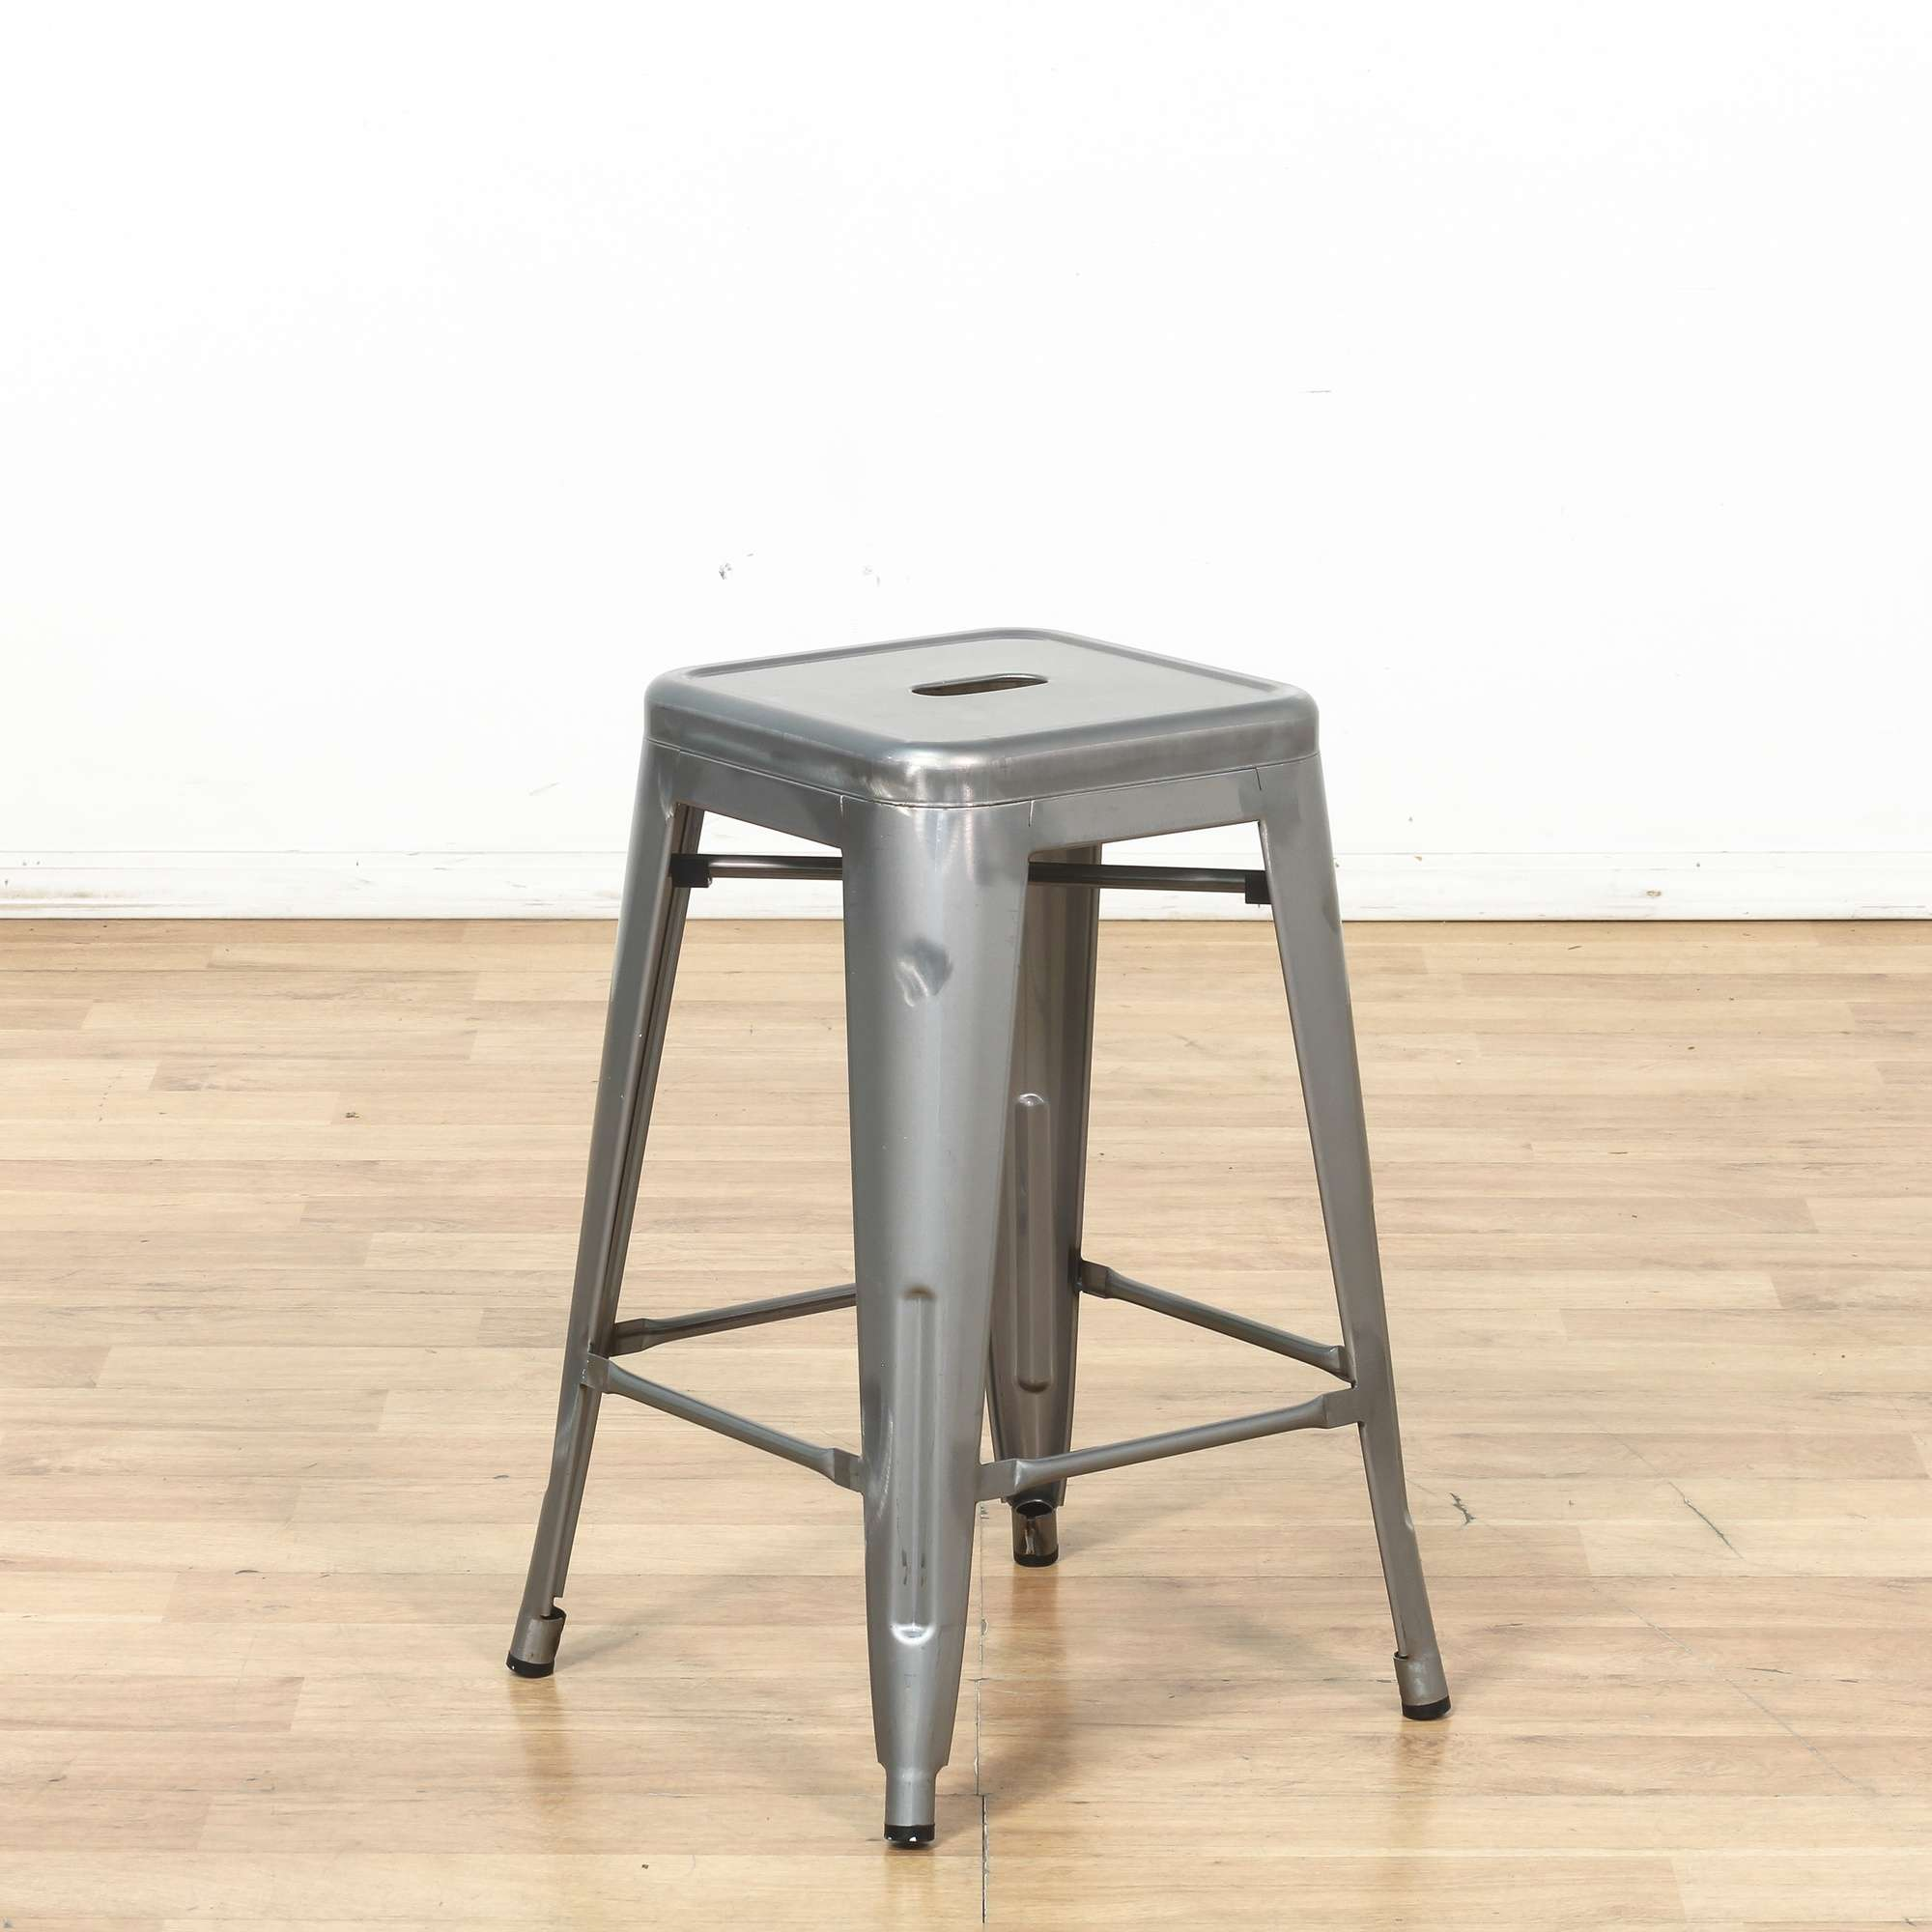 rest metal make style the charming pauchard stool with low more xavier bar placing chairs in rustic stools tolix chair back